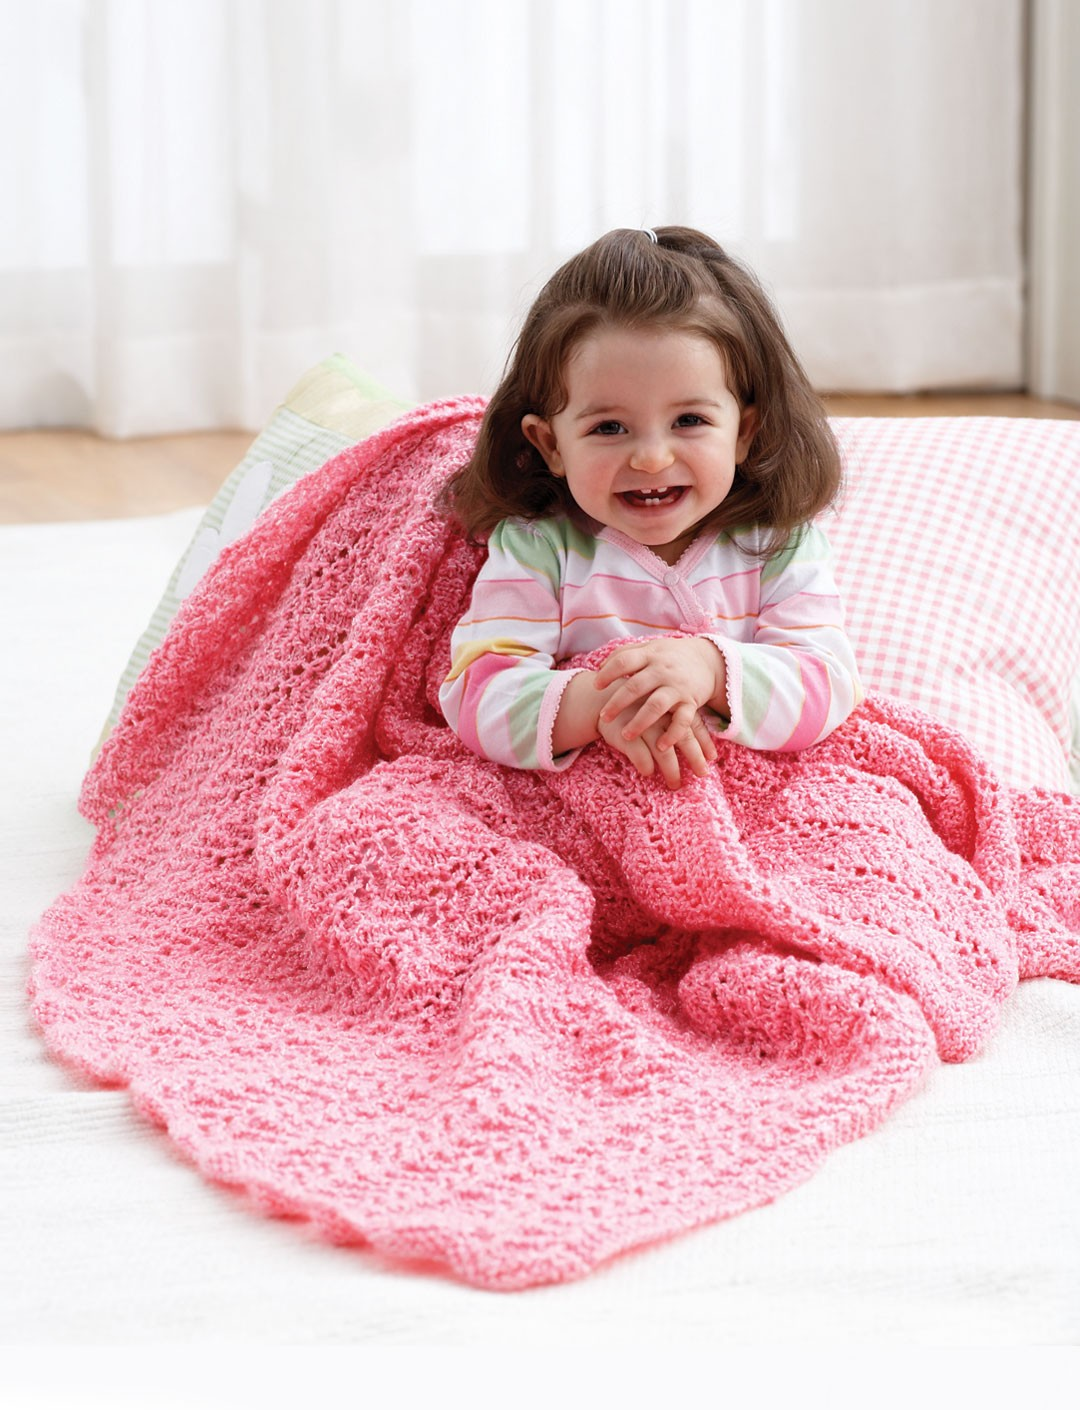 Knitting Patterns Using Baby Yarn : Knit Blanket - Patterns Yarnspirations